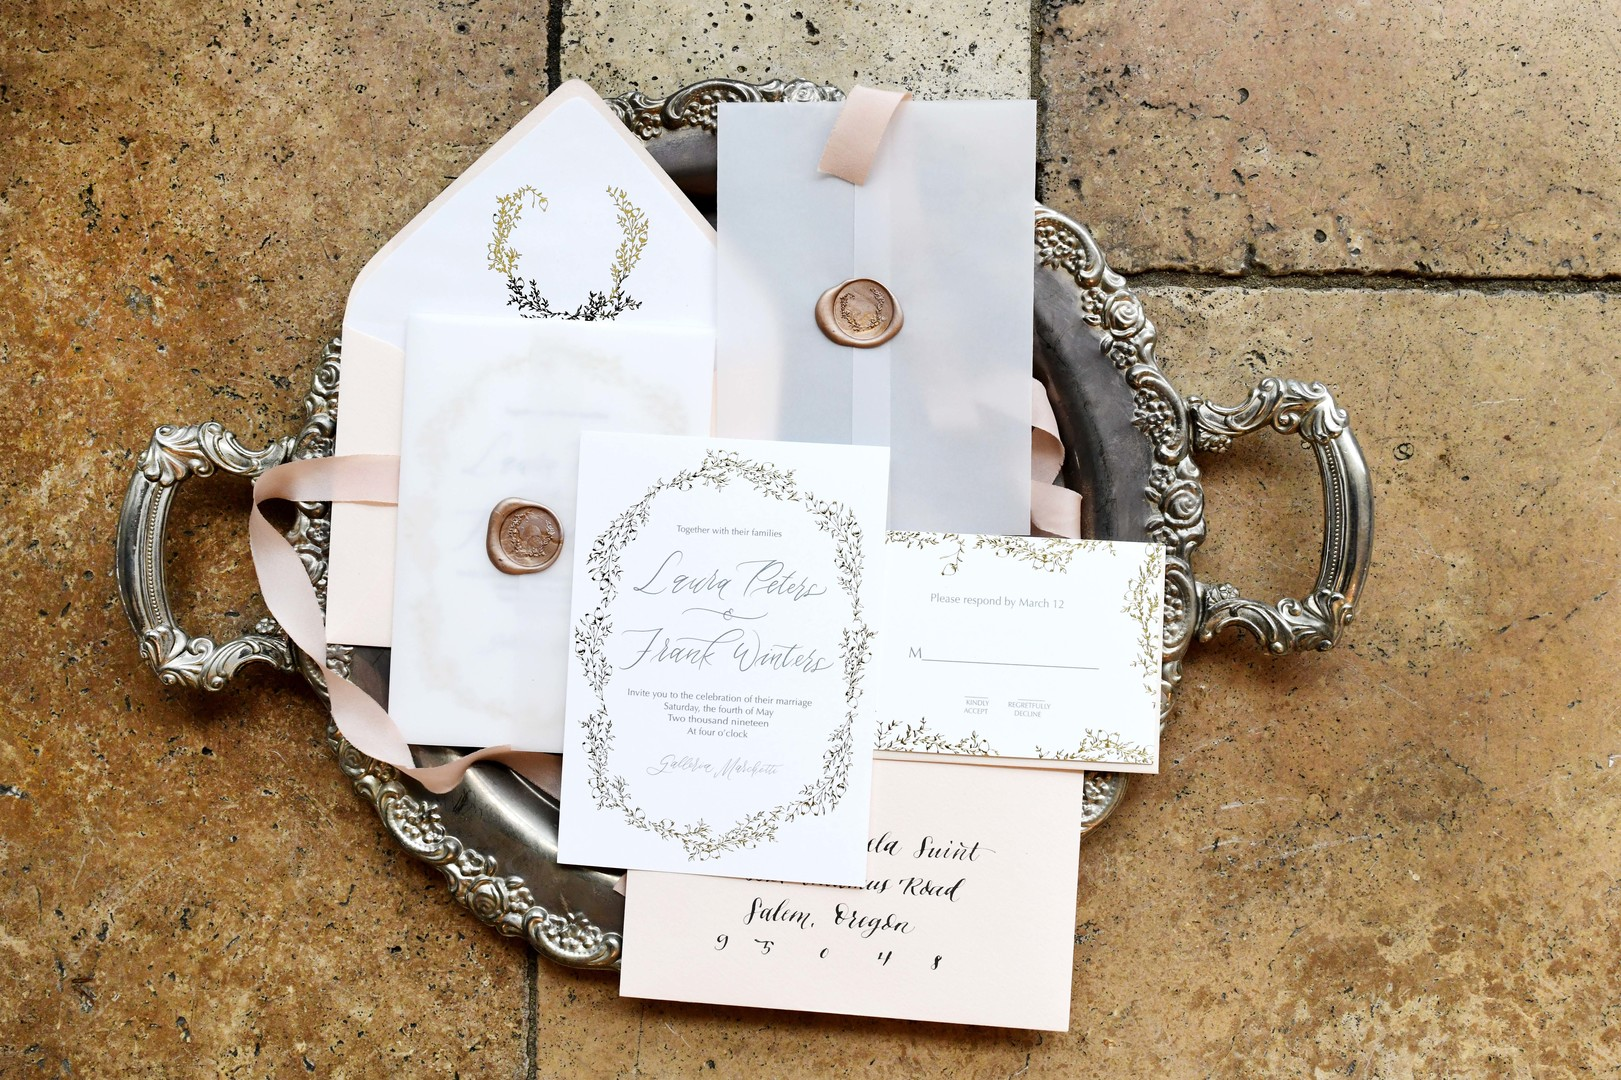 Wedding invitation suite: Romantic ivory and rose gold wedding inspiration captured by Lori Sapio. See more elegant wedding ideas at CHItheeWED.com!